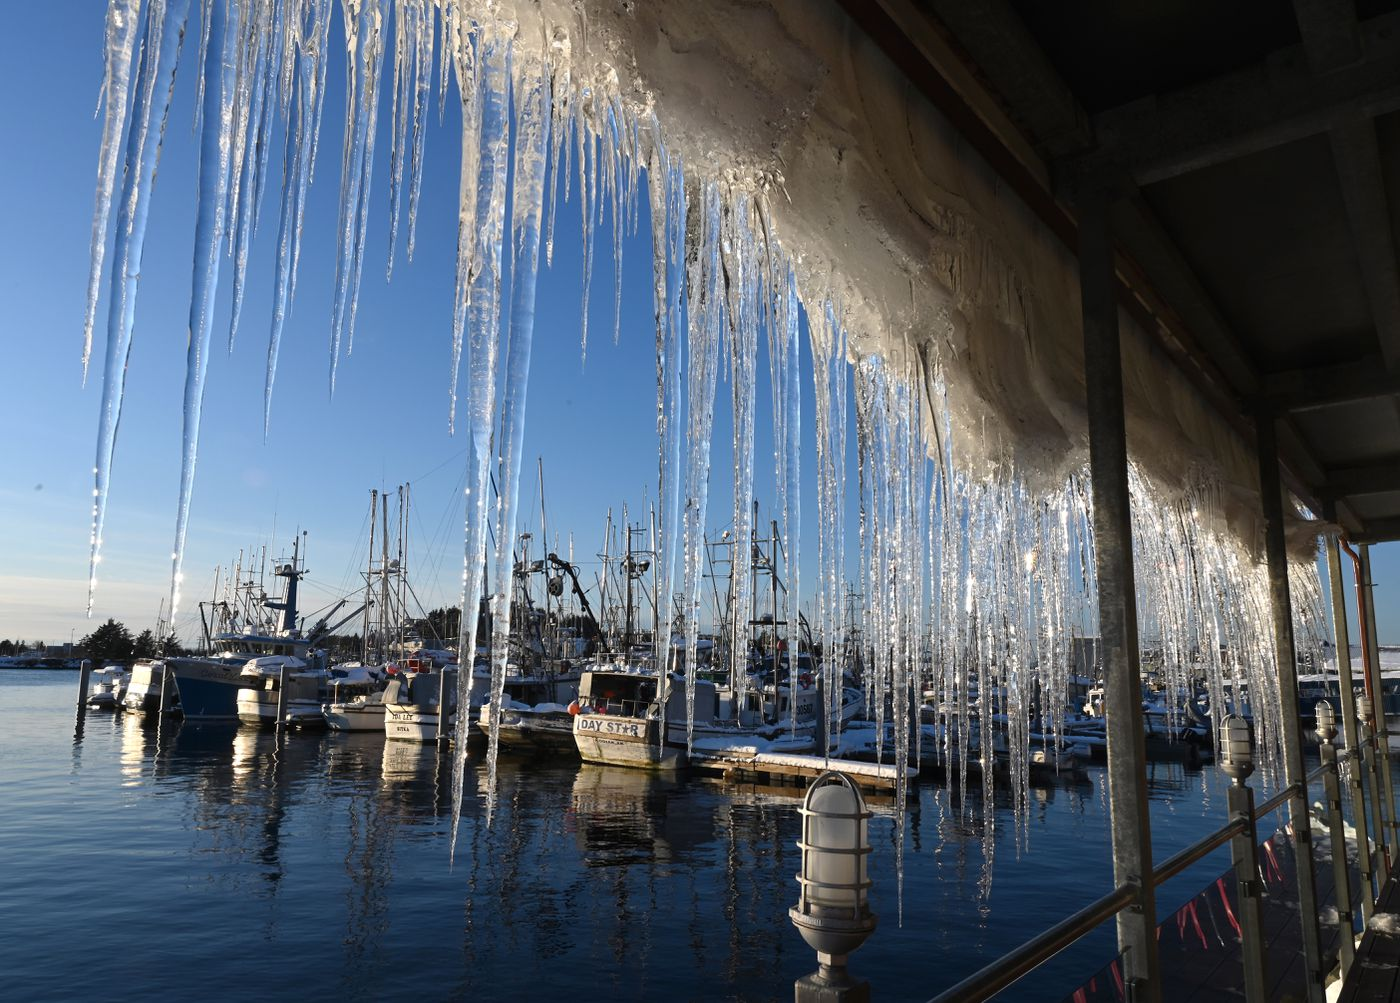 JANUARY 12. A curtain of icicles develops on the deck roof of Mean Queen at Totem Square as the blanket of snow slowly melts and slides. The ANB Harbor, one of Sitka's five harbors, is in the background. (Anne Raup / ADN)